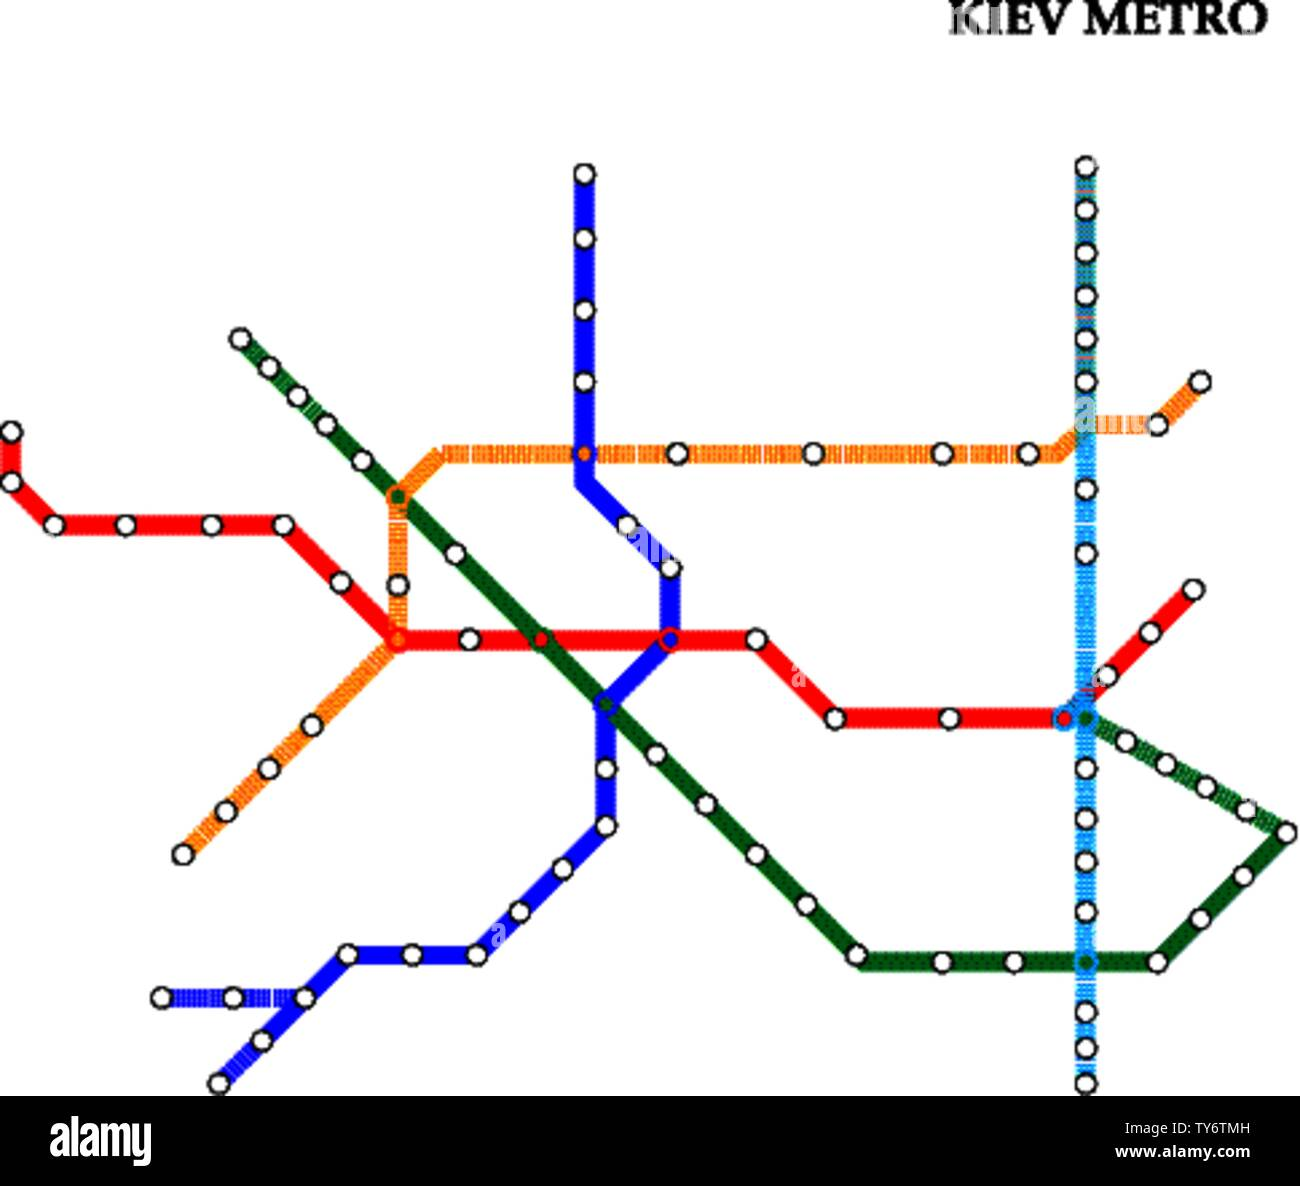 Map of the Kiev metro, Subway, Template of city transportation scheme for underground road. Stock Vector